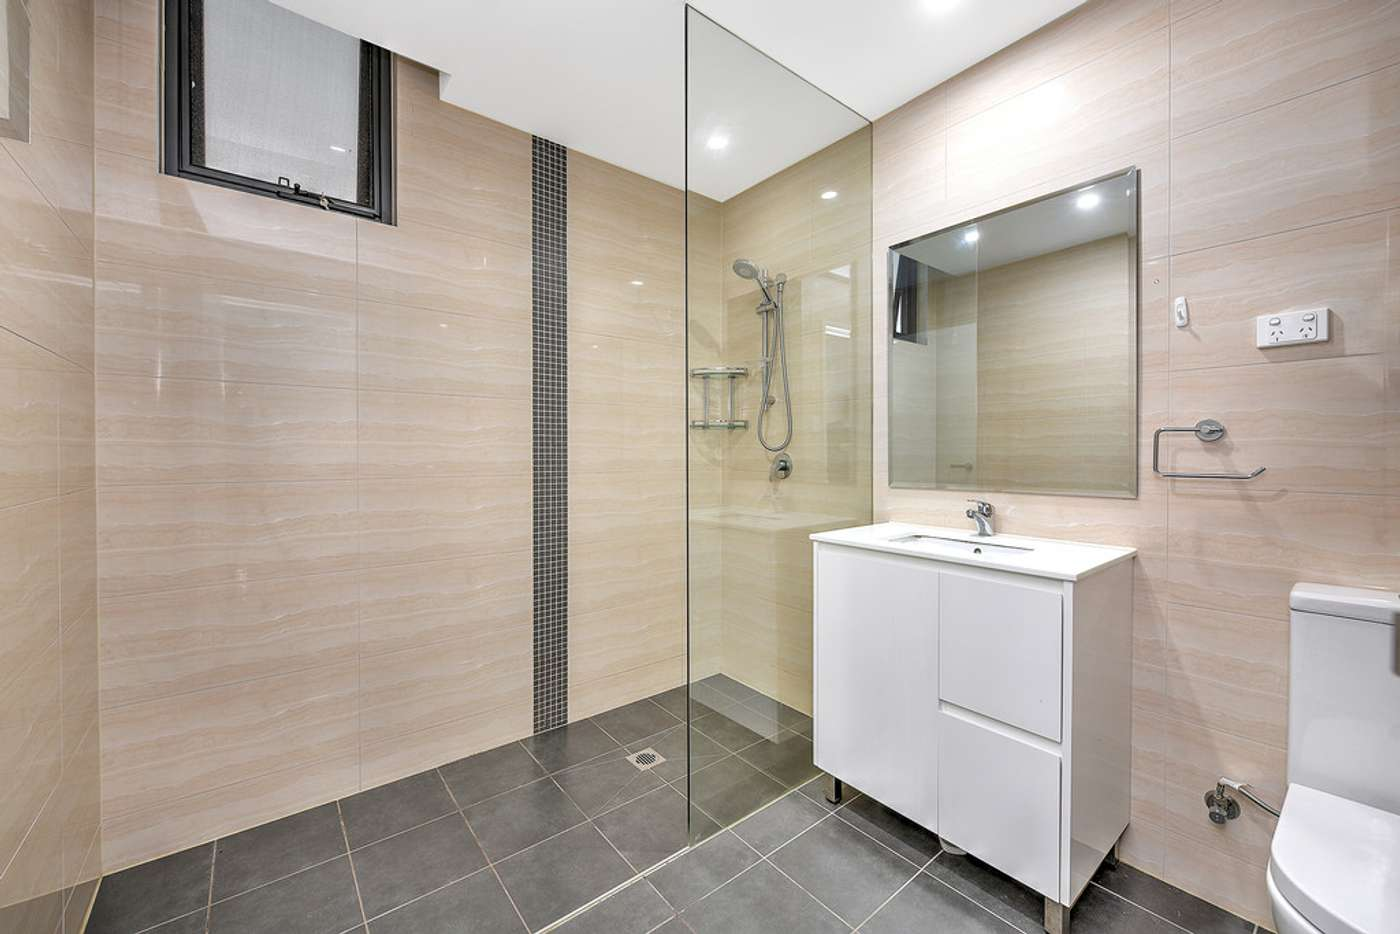 Sixth view of Homely apartment listing, 5501/1a Morton Street, Parramatta NSW 2150